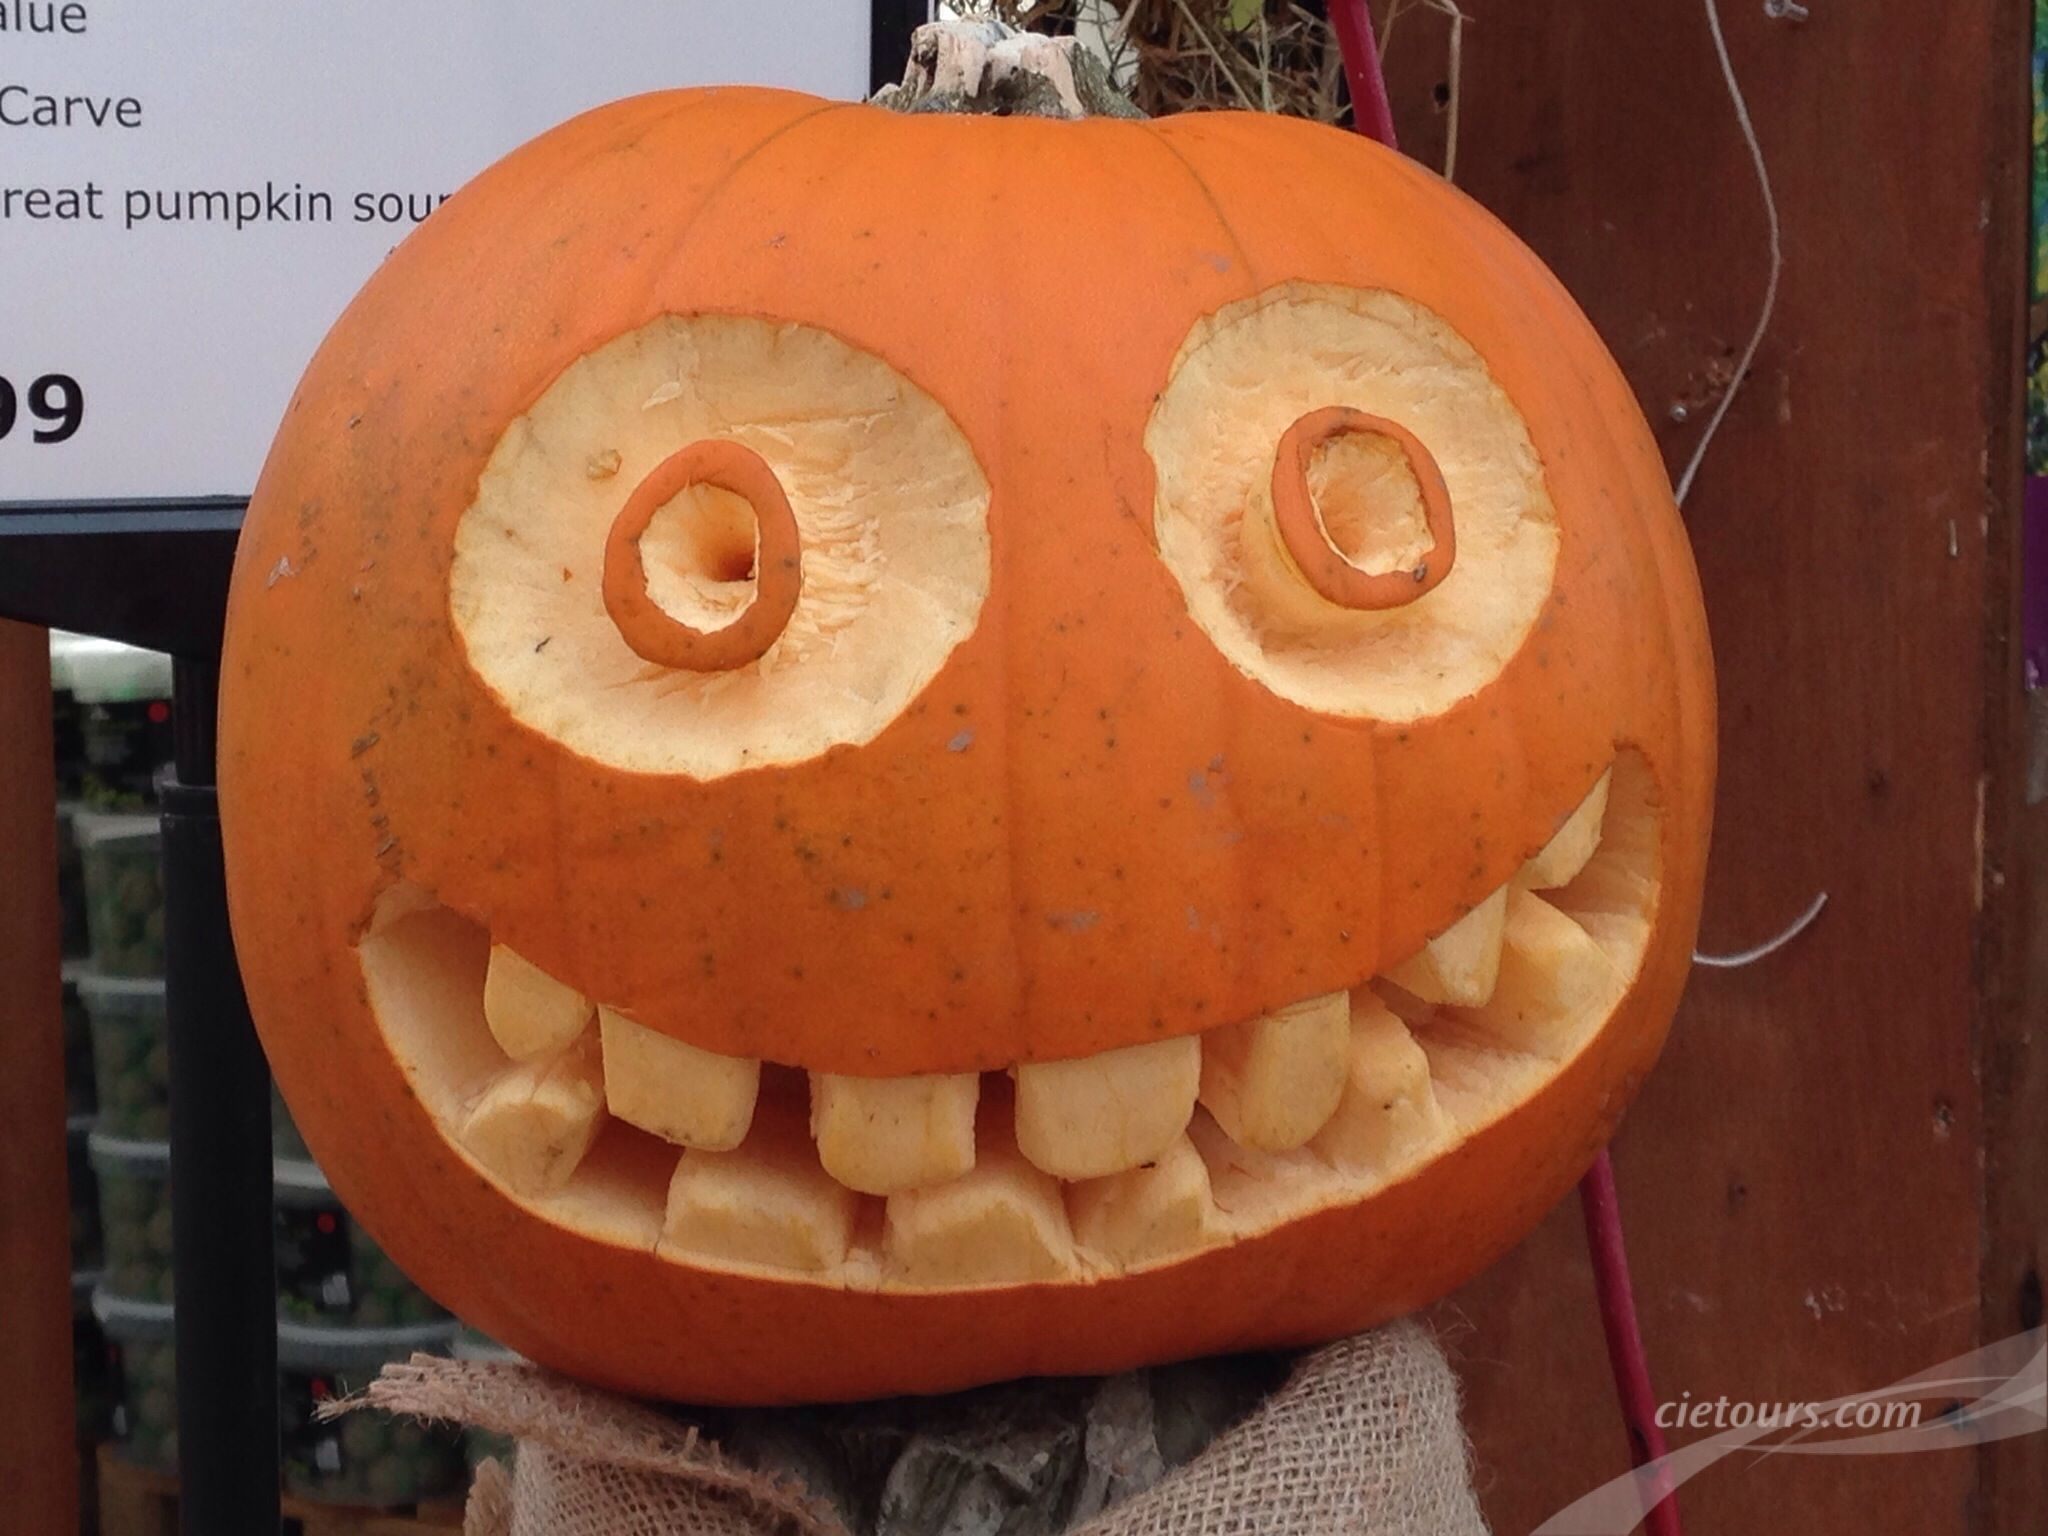 Did you know?? The traditional Halloween pumpkin